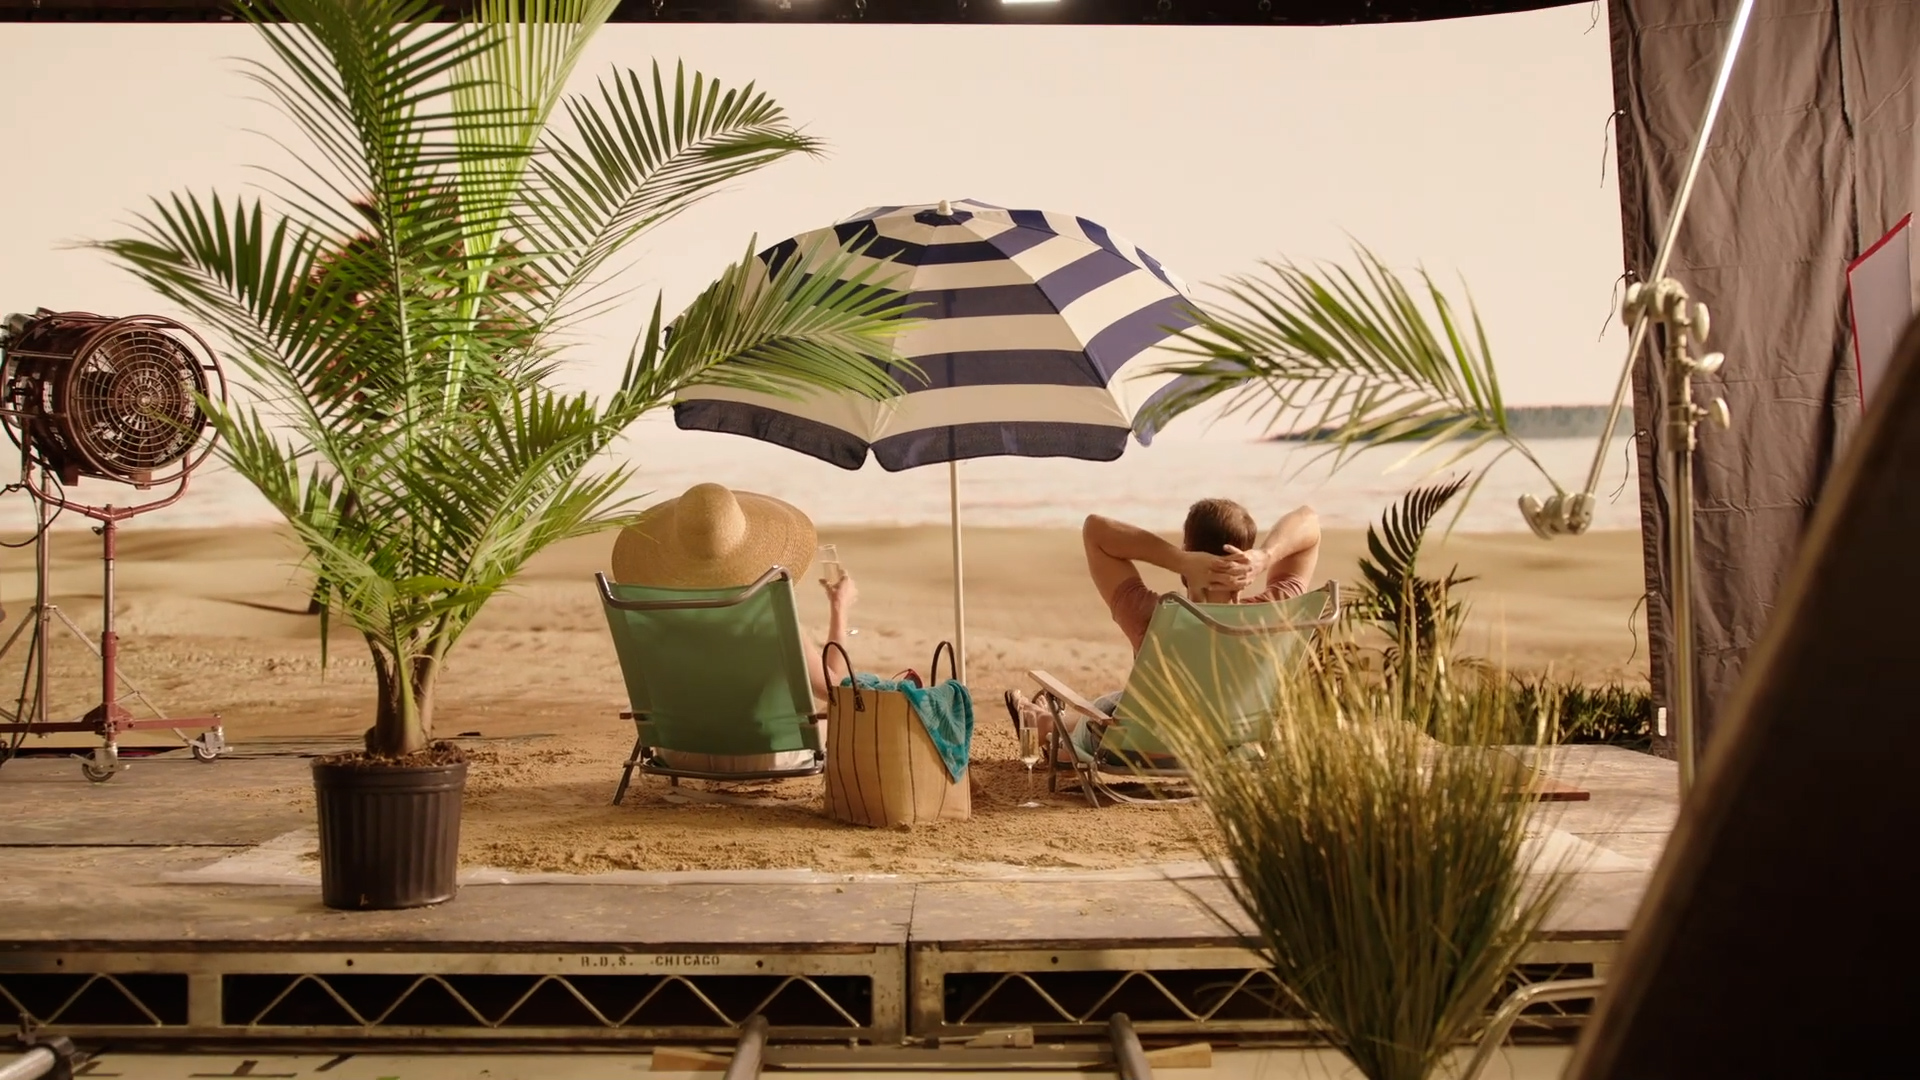 Image of a virtual production stage and set. The setting is a tropical beach. A man and a woman sit in beach chairs under an umbrella, relaxing, staring out into the ocean.